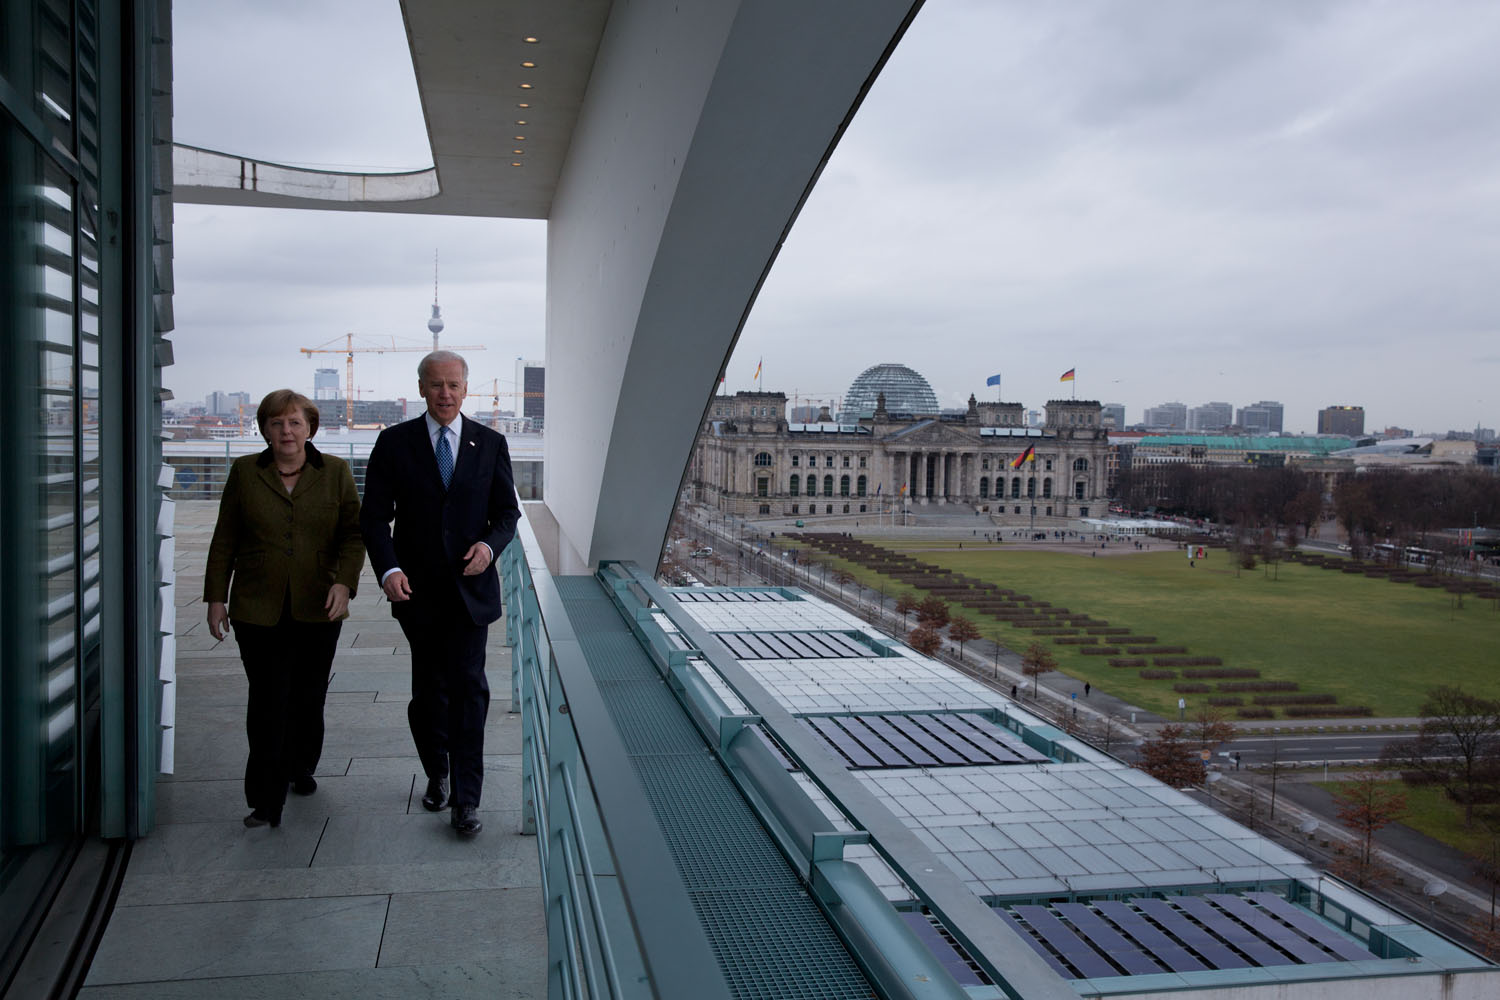 Vice President Joe Biden and German Chancellor Angela Merkel